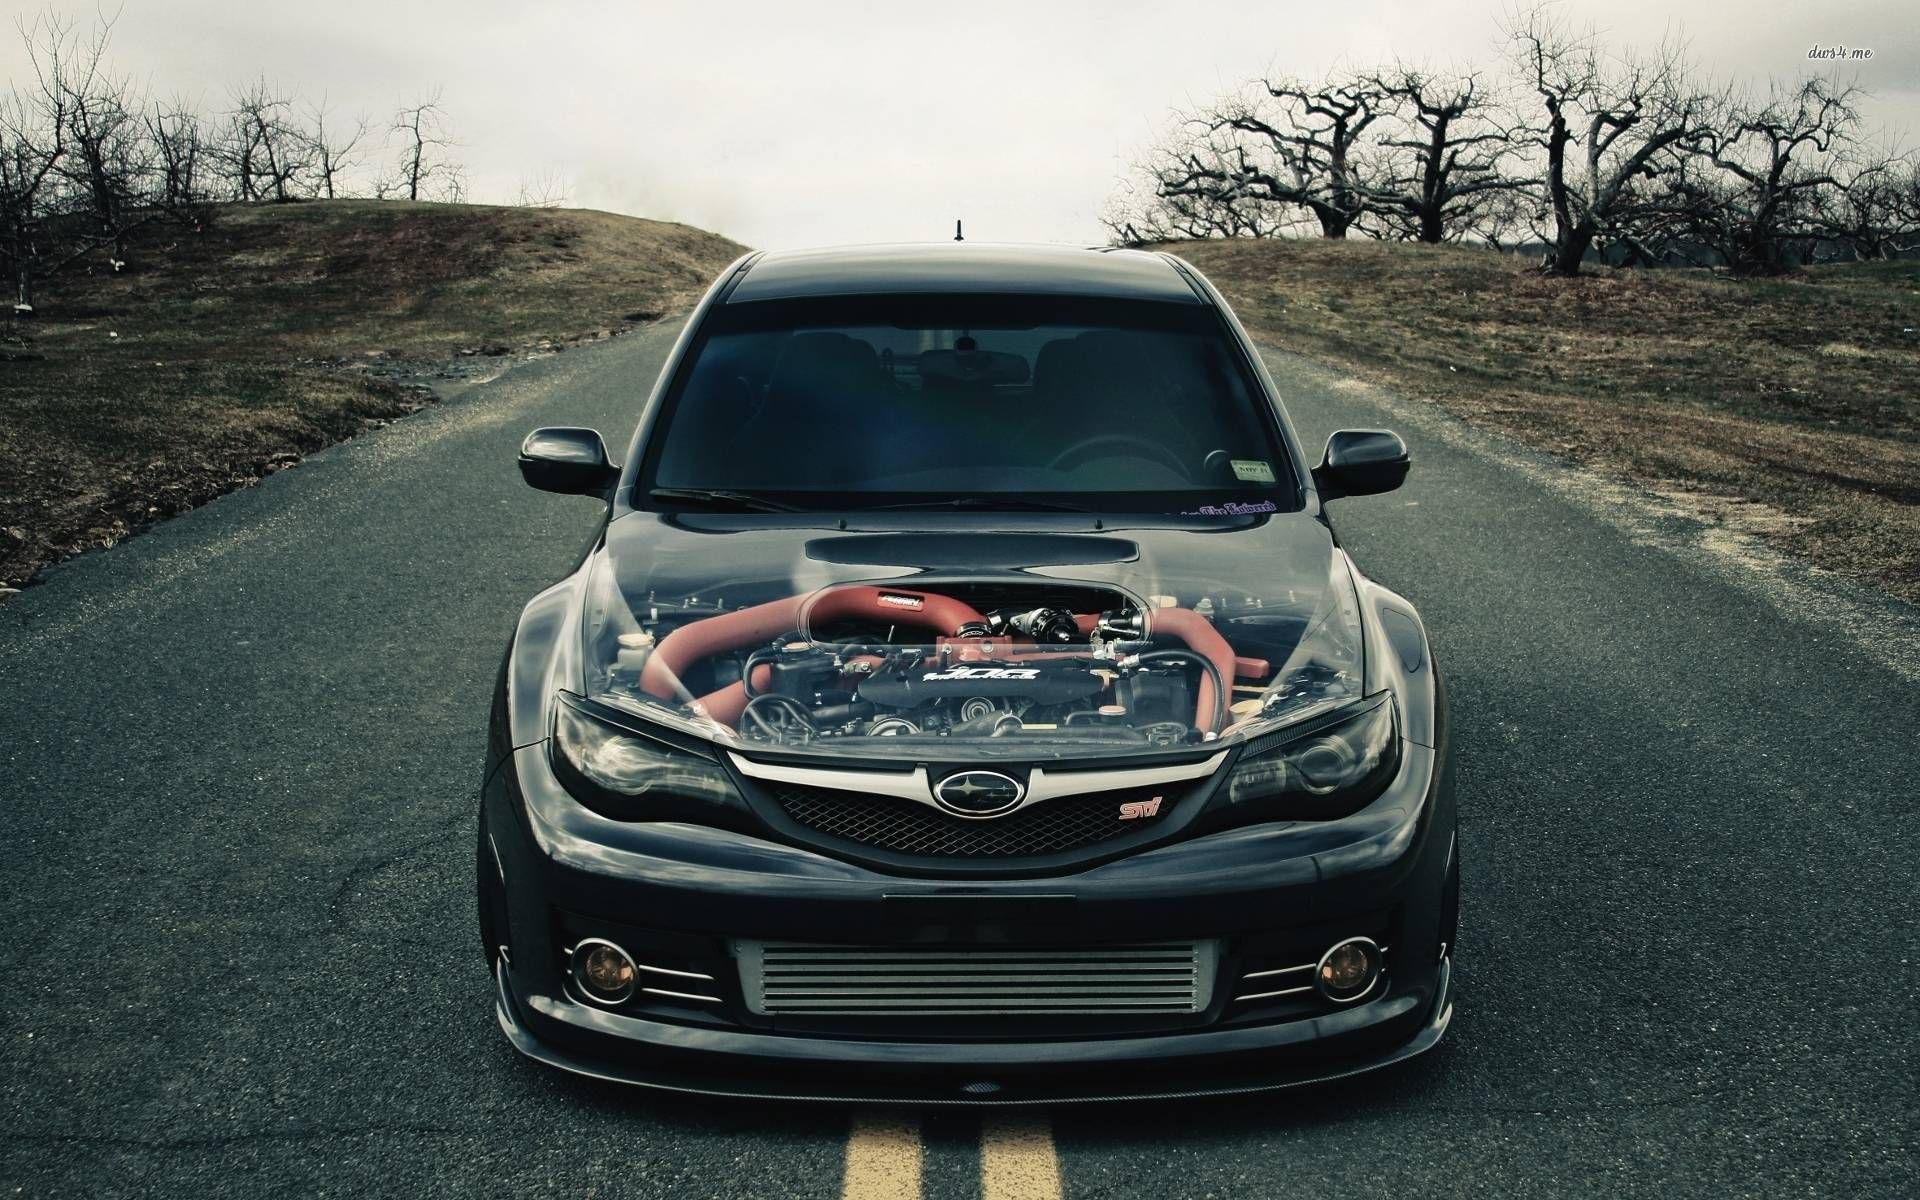 Subaru Impreza Wrx Sti Wallpaper Car Wallpapers Subaruuuu